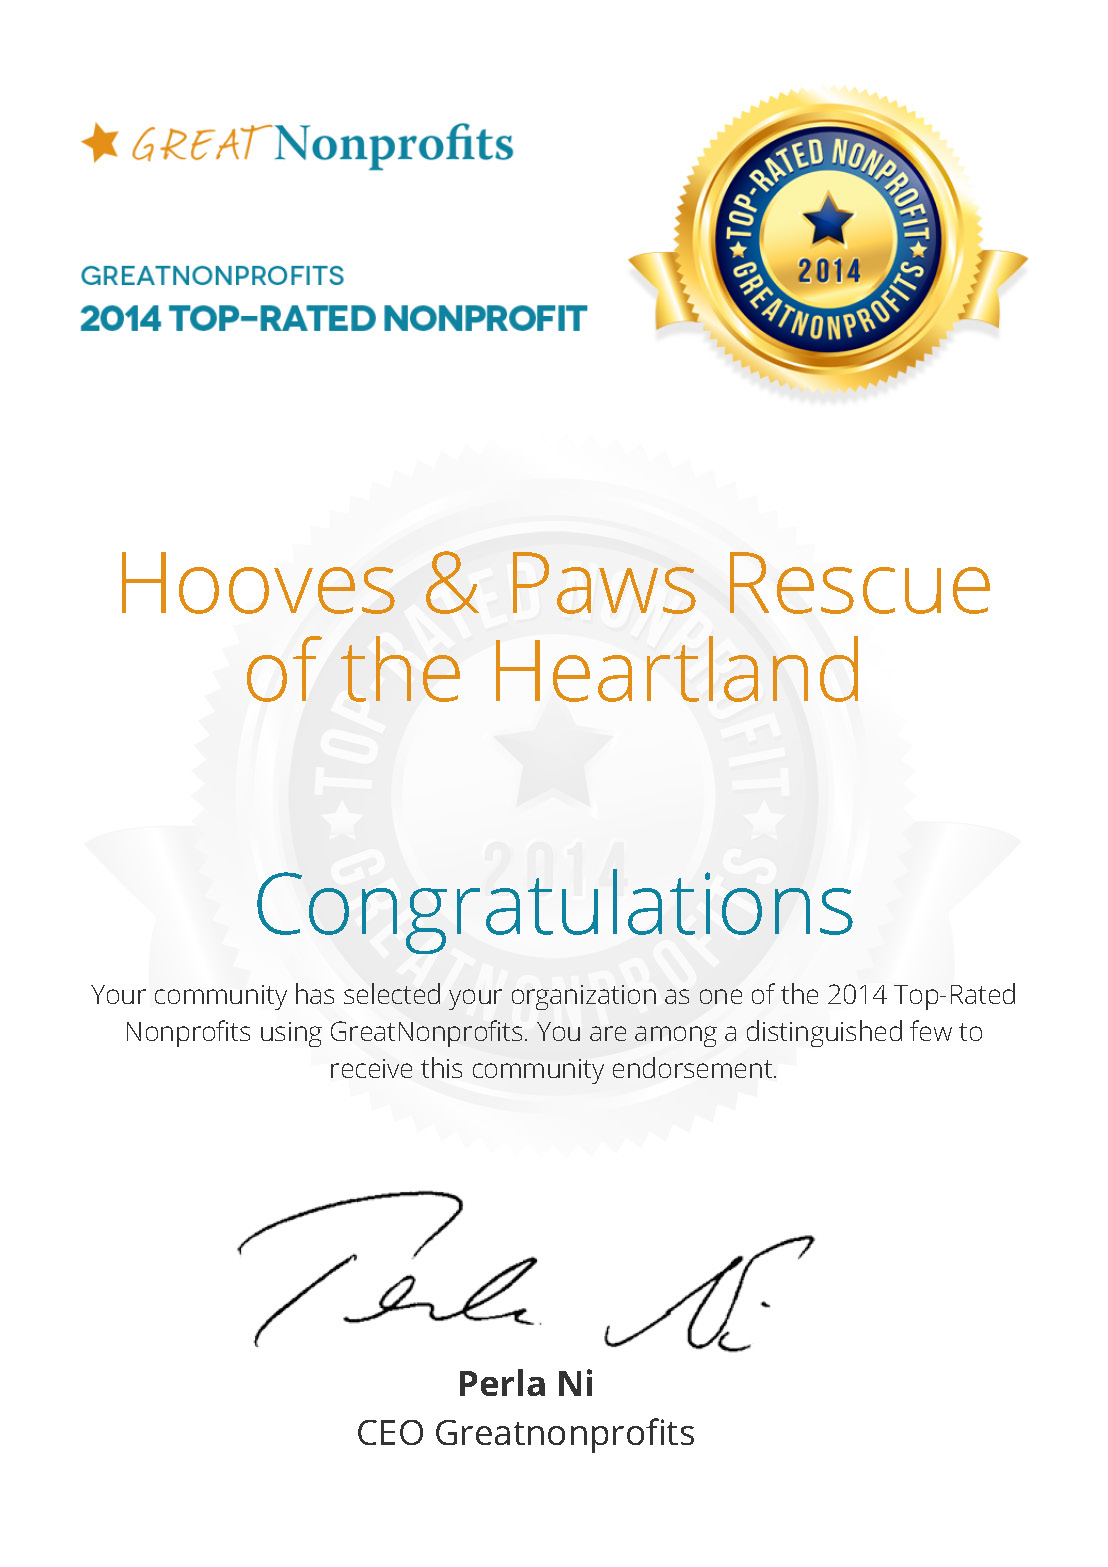 Hooves & Paws Rescue Of The Heartland Has Been Awarded